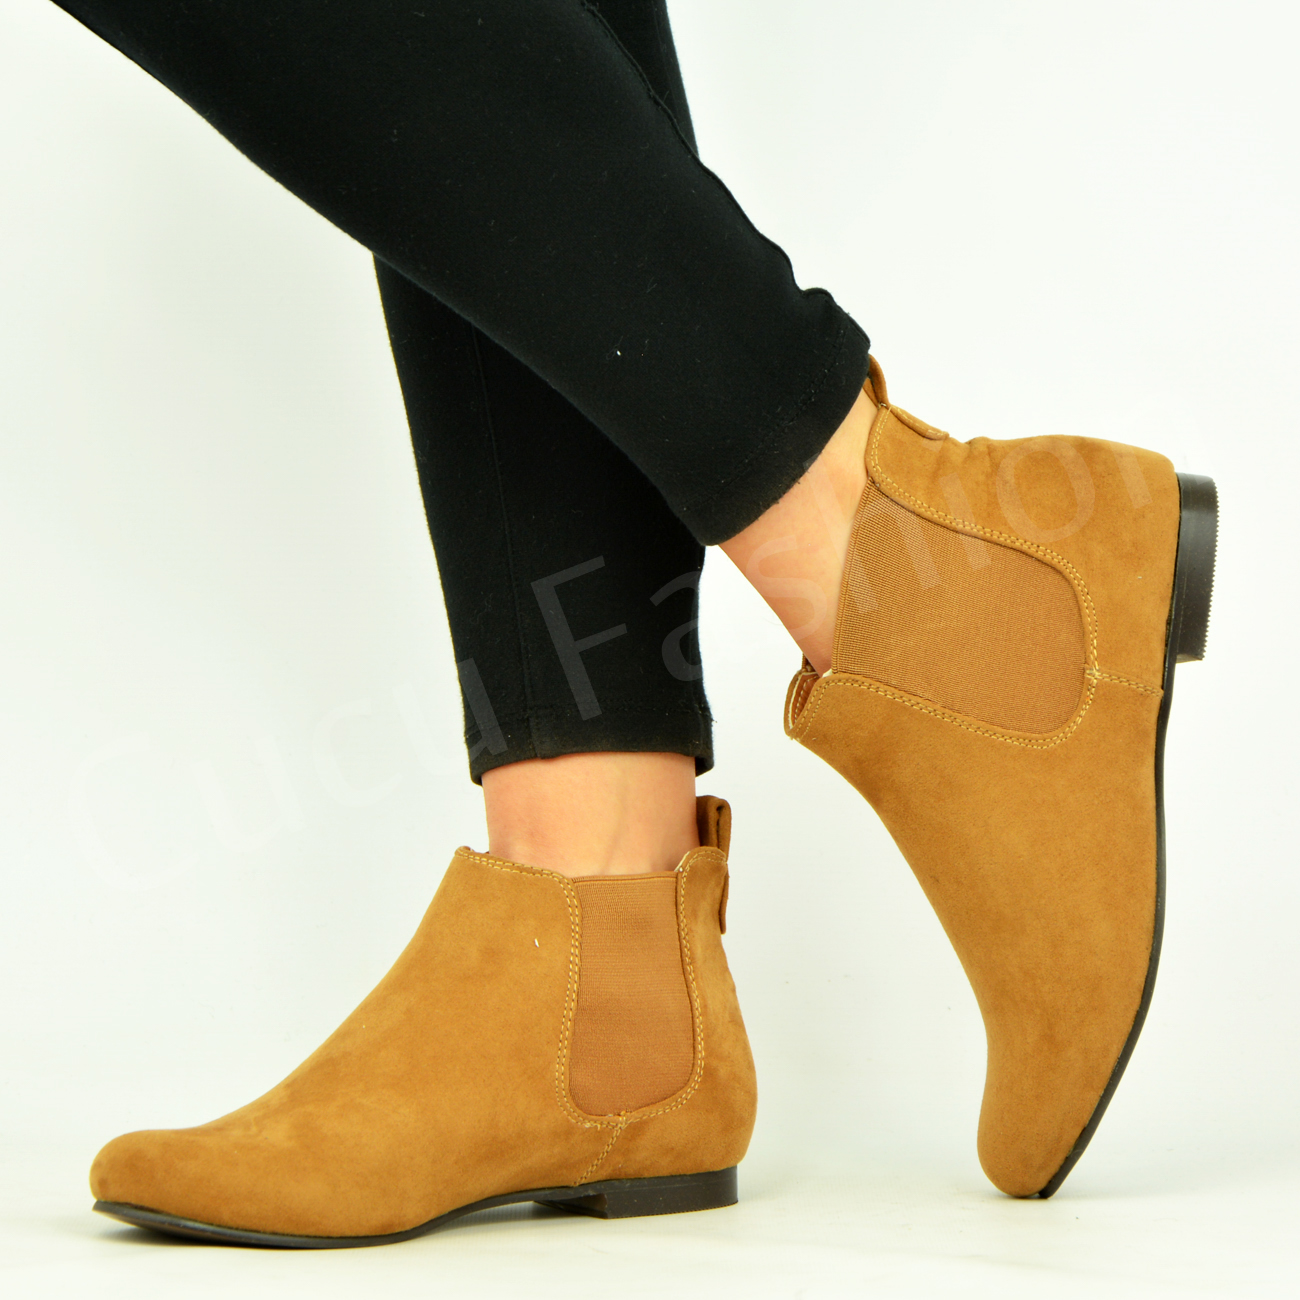 Women's Slip On Low Heel Suede Chelsea Ankle Boots